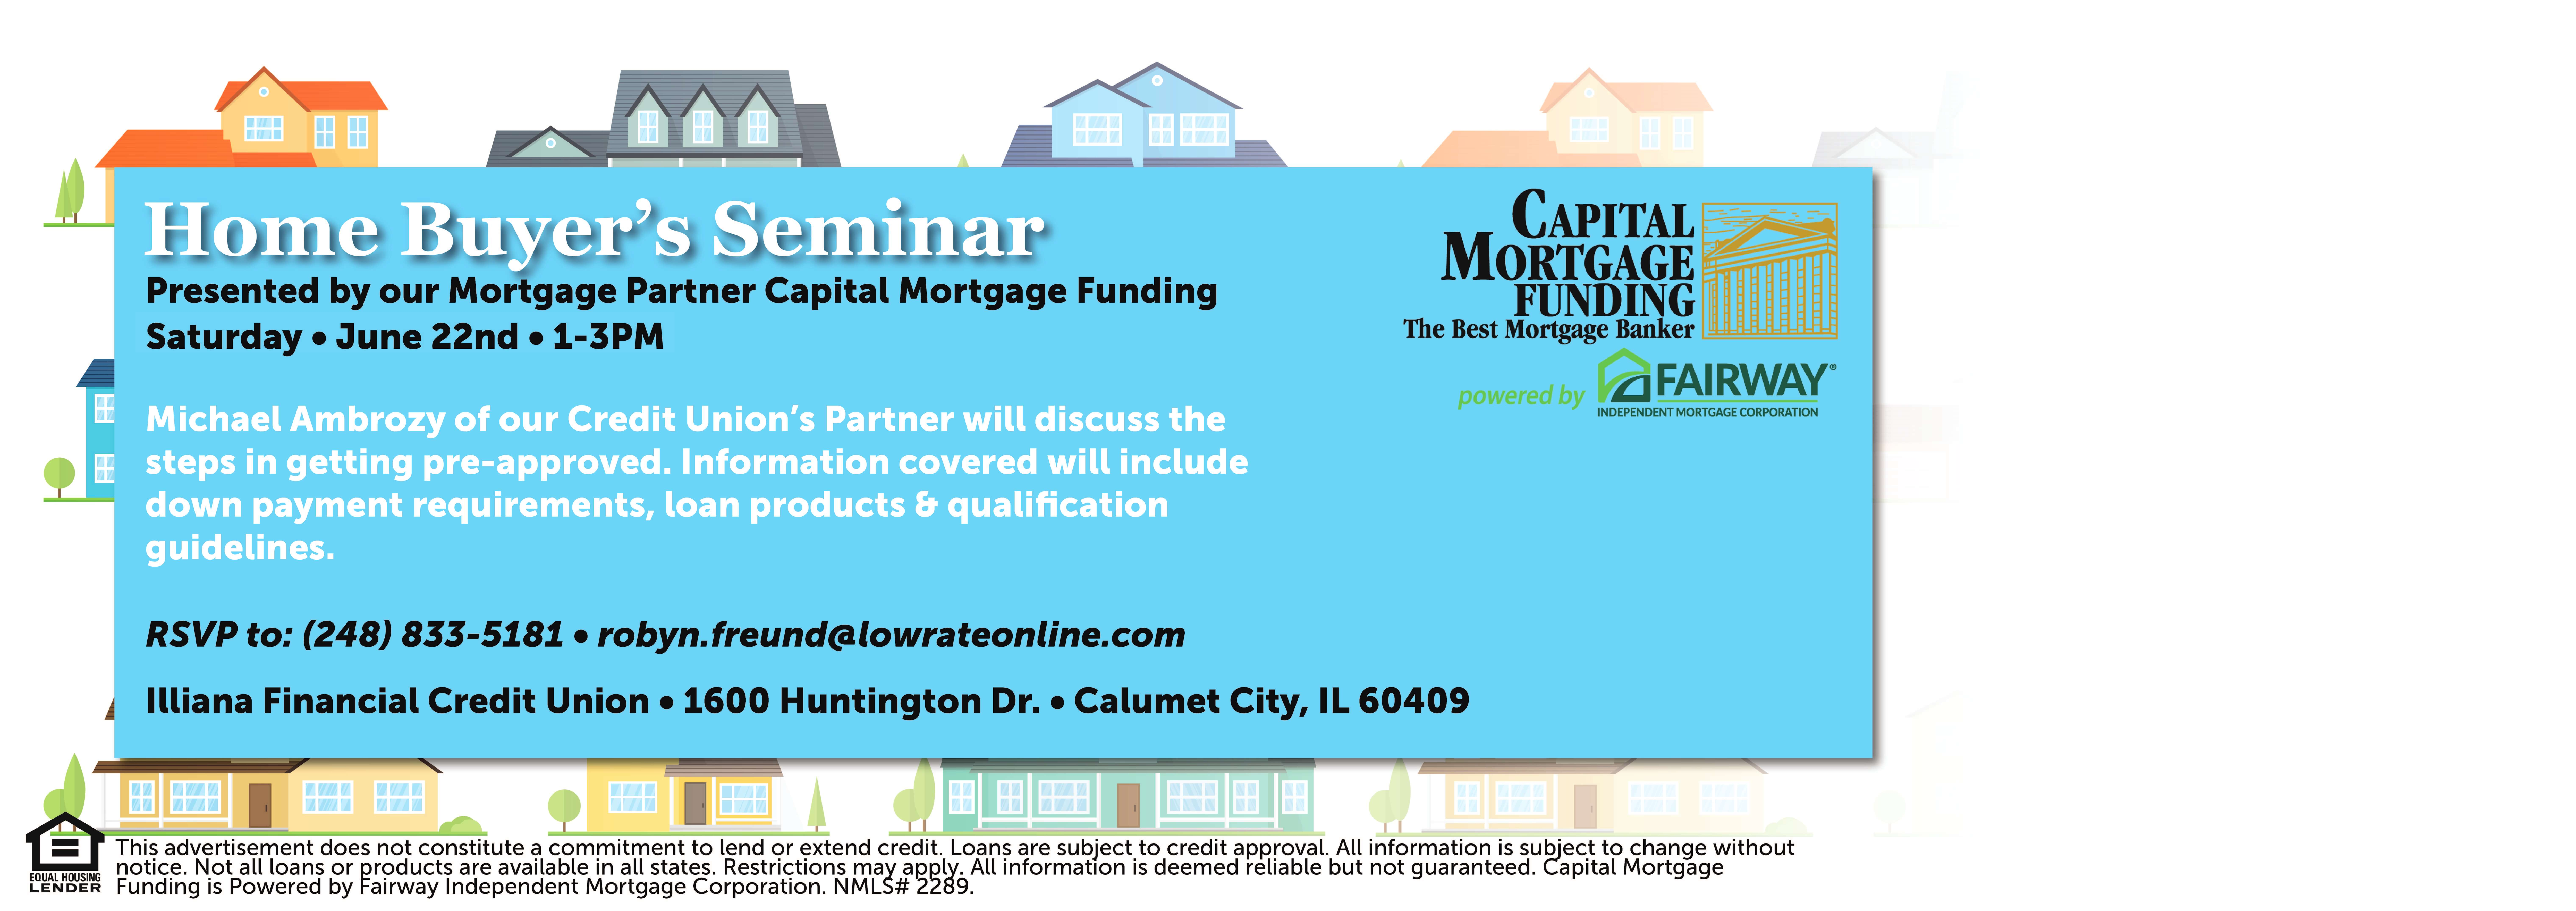 Captial Mortgage Funding Home Buyer's Seminar